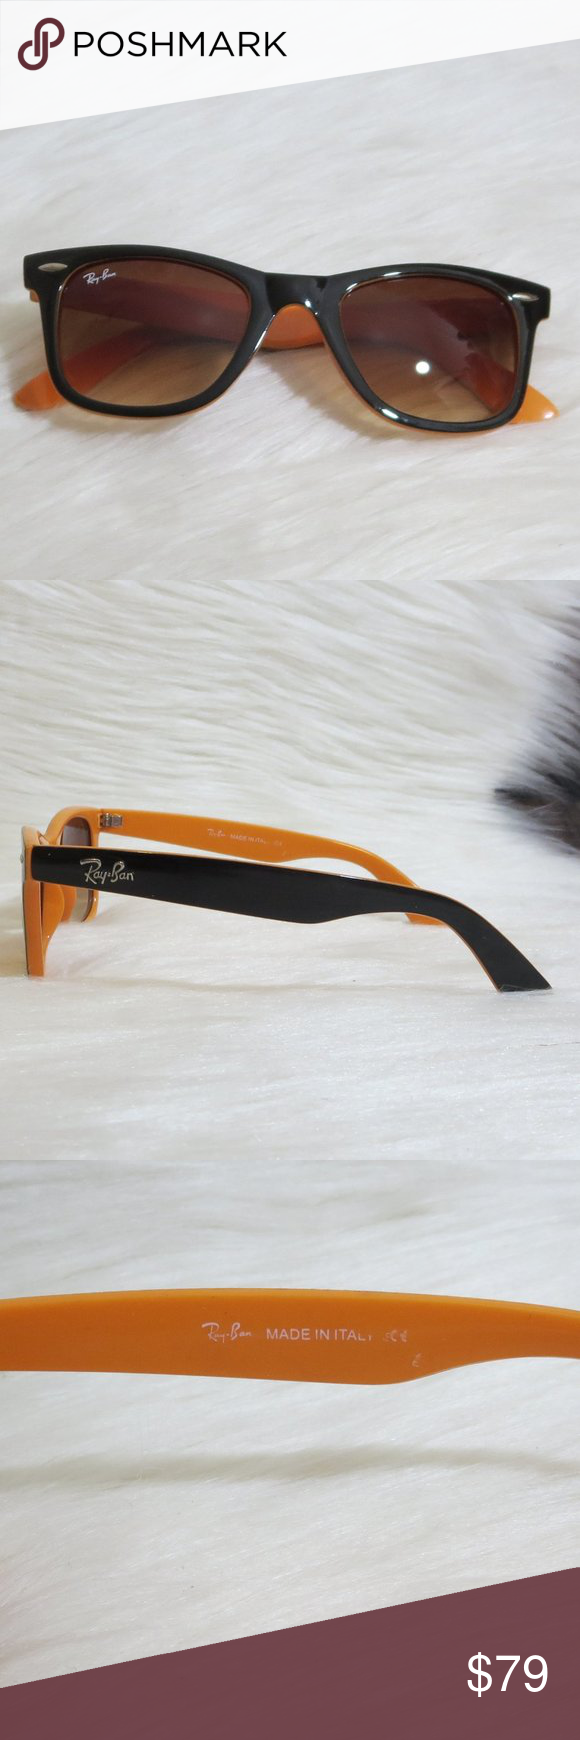 Ray Ban Wayfarer Unisex Orange Black In 2020 Ray Bans Rayban Wayfarer Orange Black